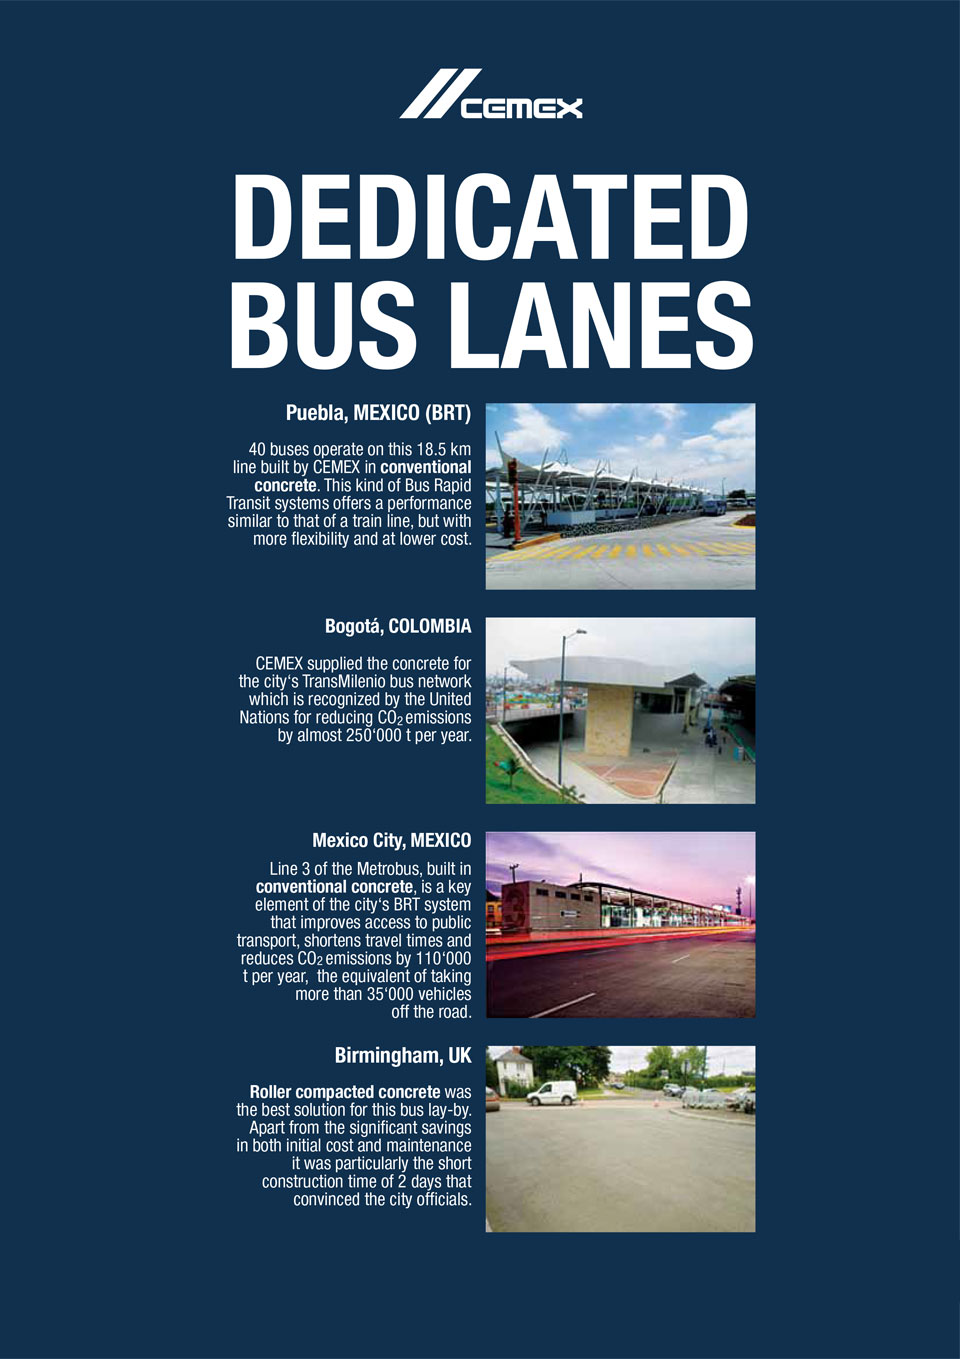 the image shows several bus lanes CEMEX has helped with the construction of